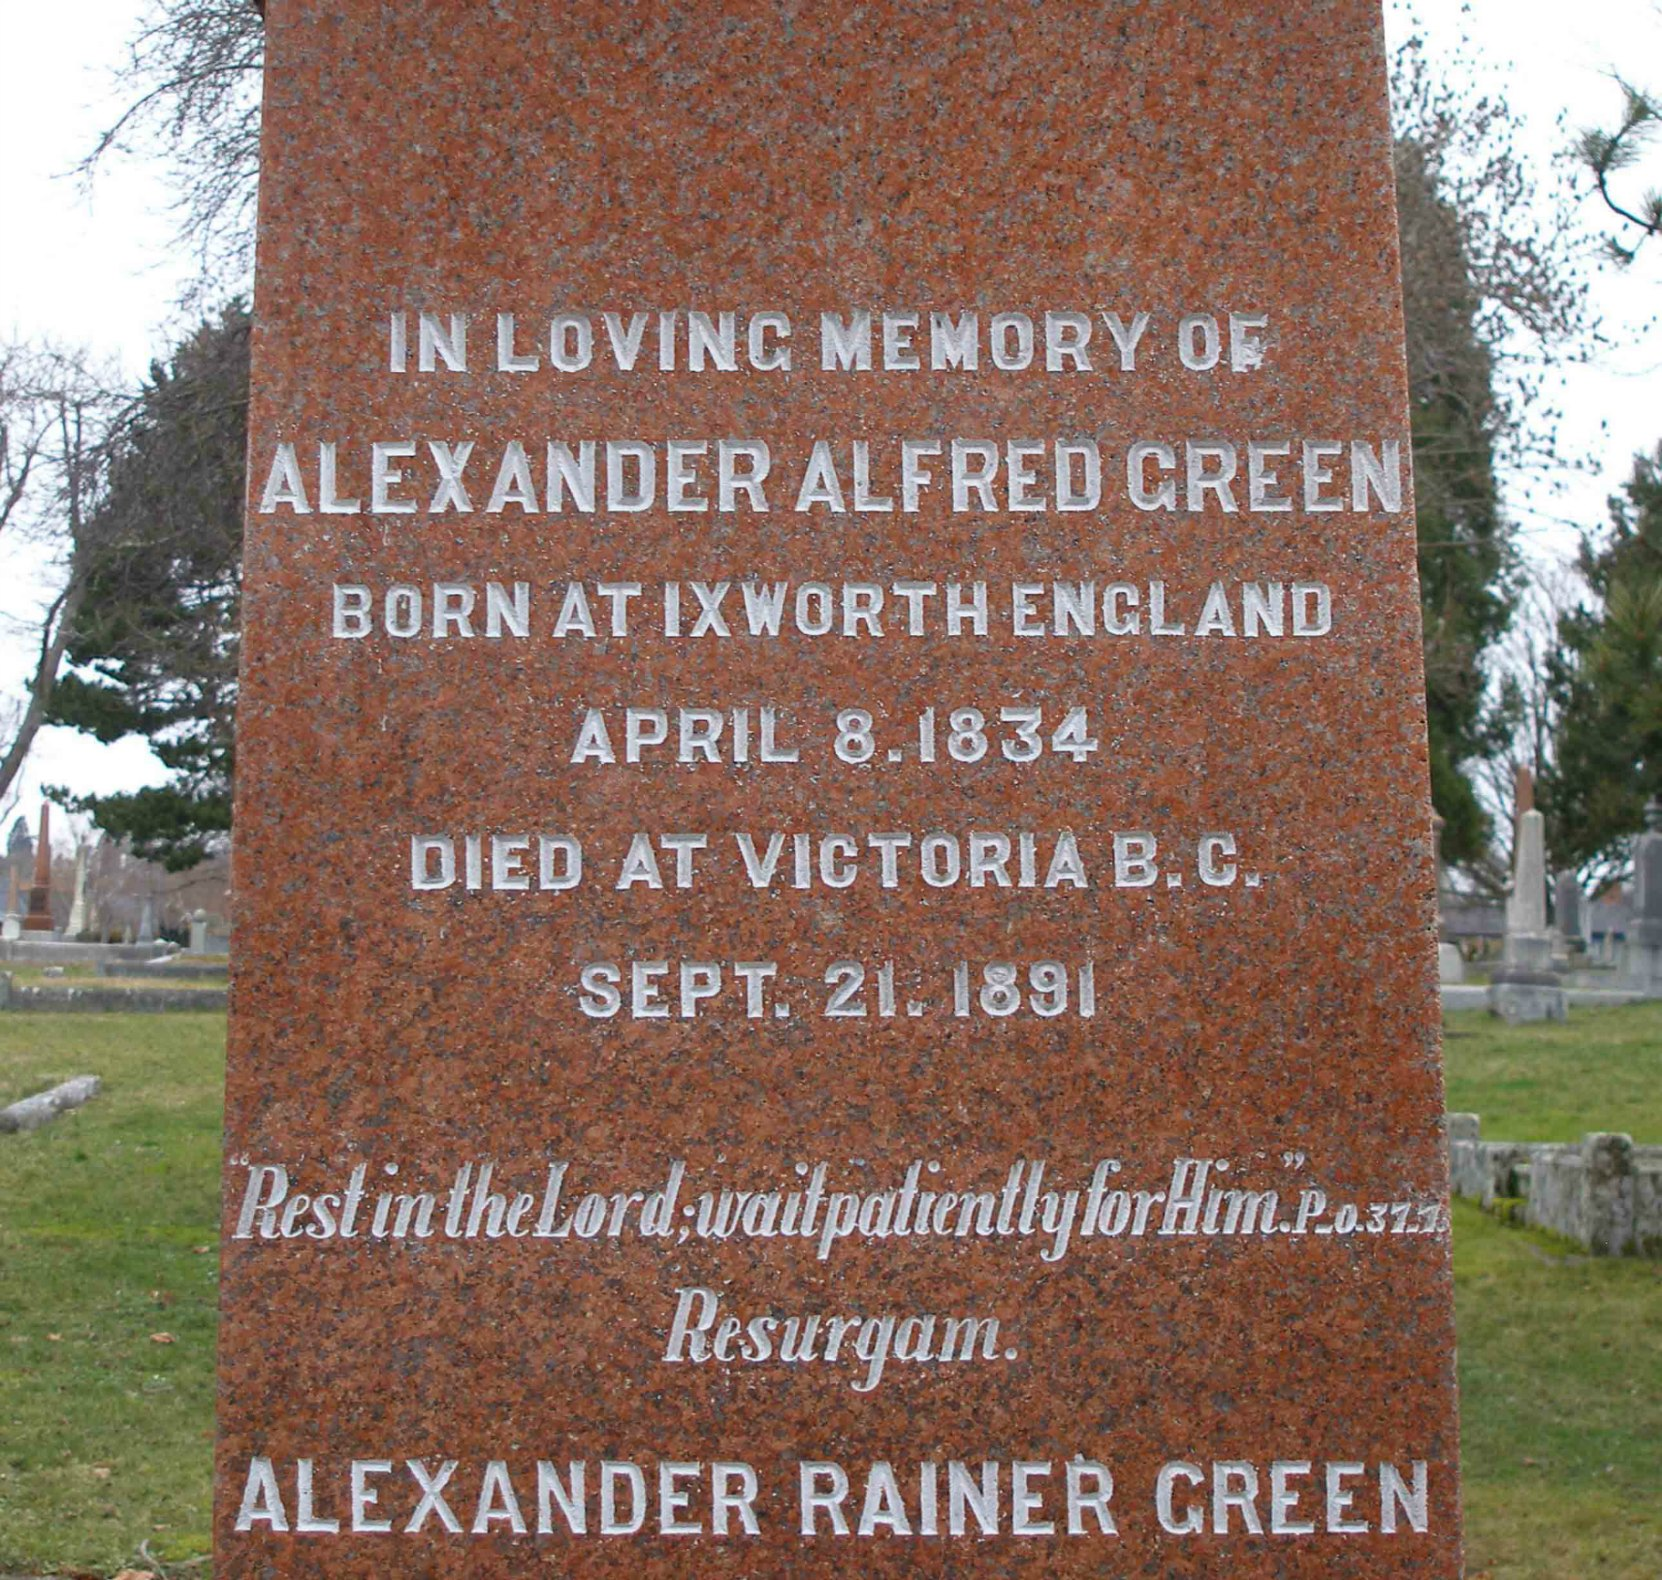 Inscription on Alexander Alfred Green grave stone, Ross Bay Cemetery, Victoria, B.C.